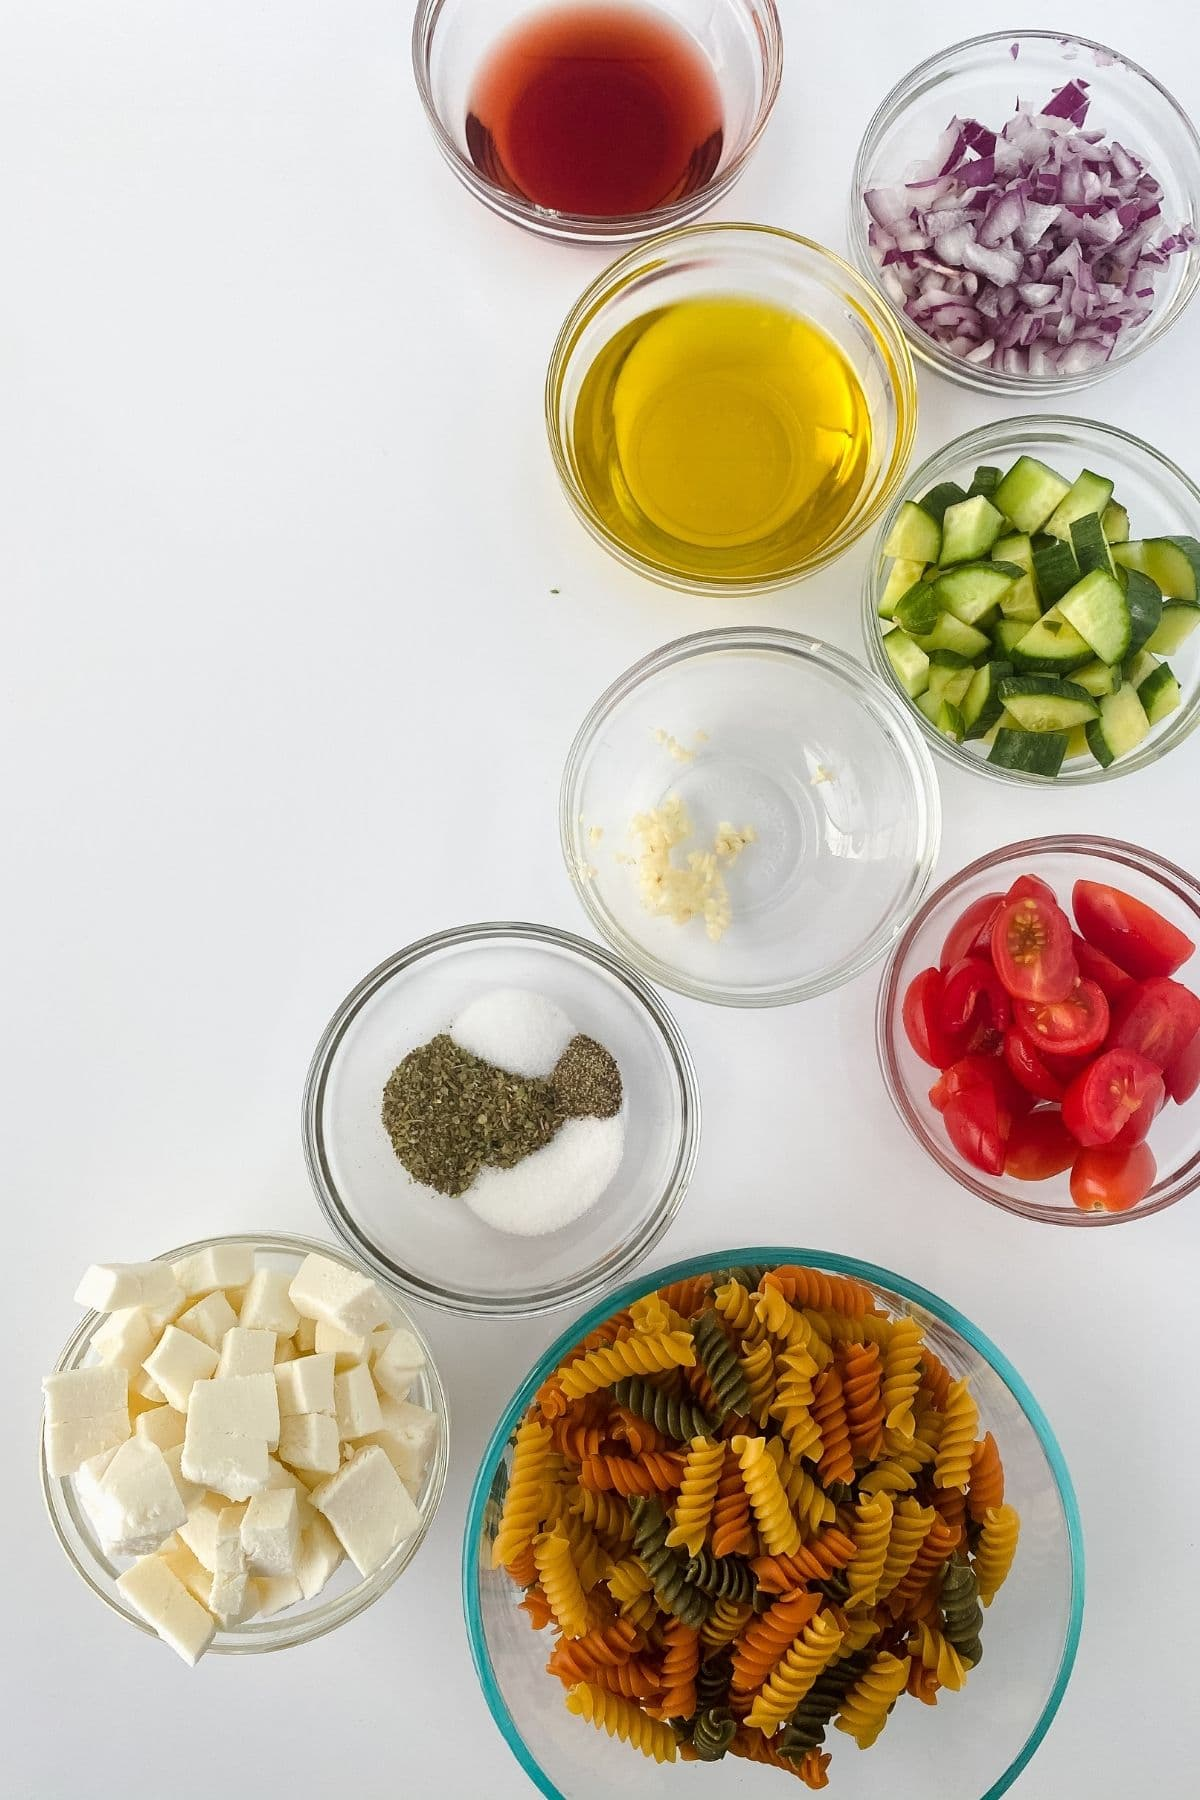 Ingredients for pasta salad in glass bowls on white table